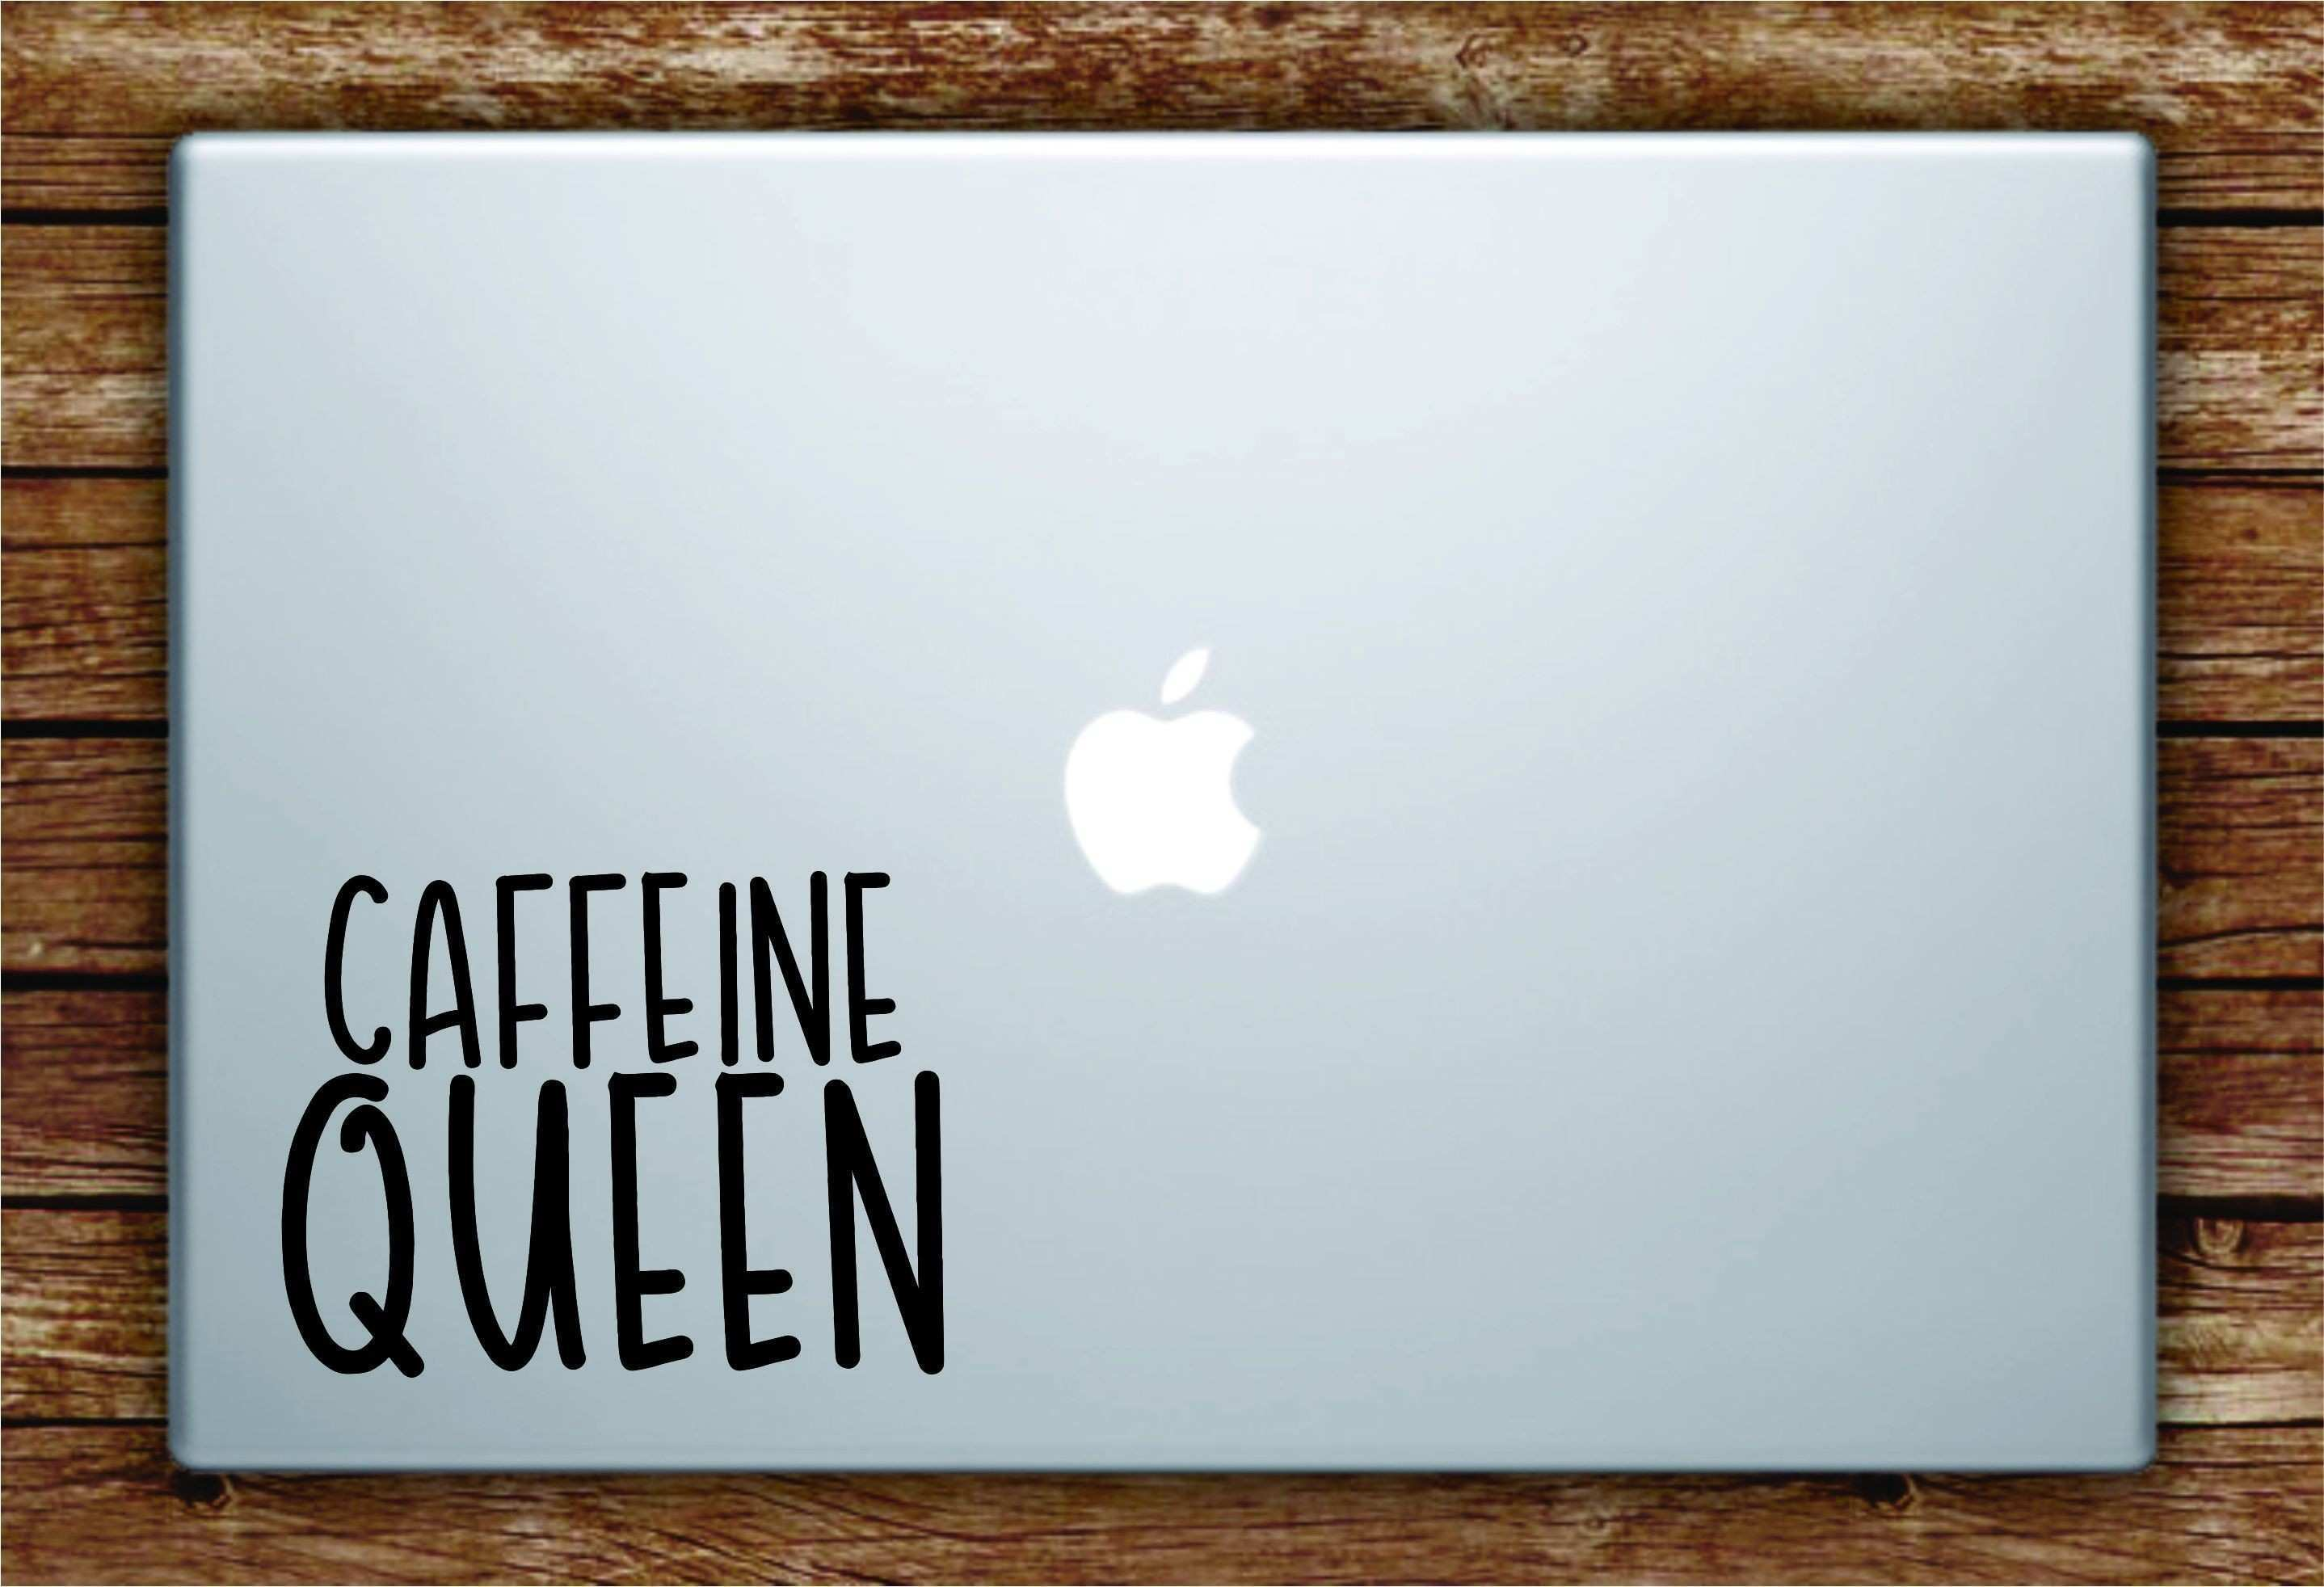 Caffeine Queen Laptop Apple Macbook Quote Wall Decal Sticker Art